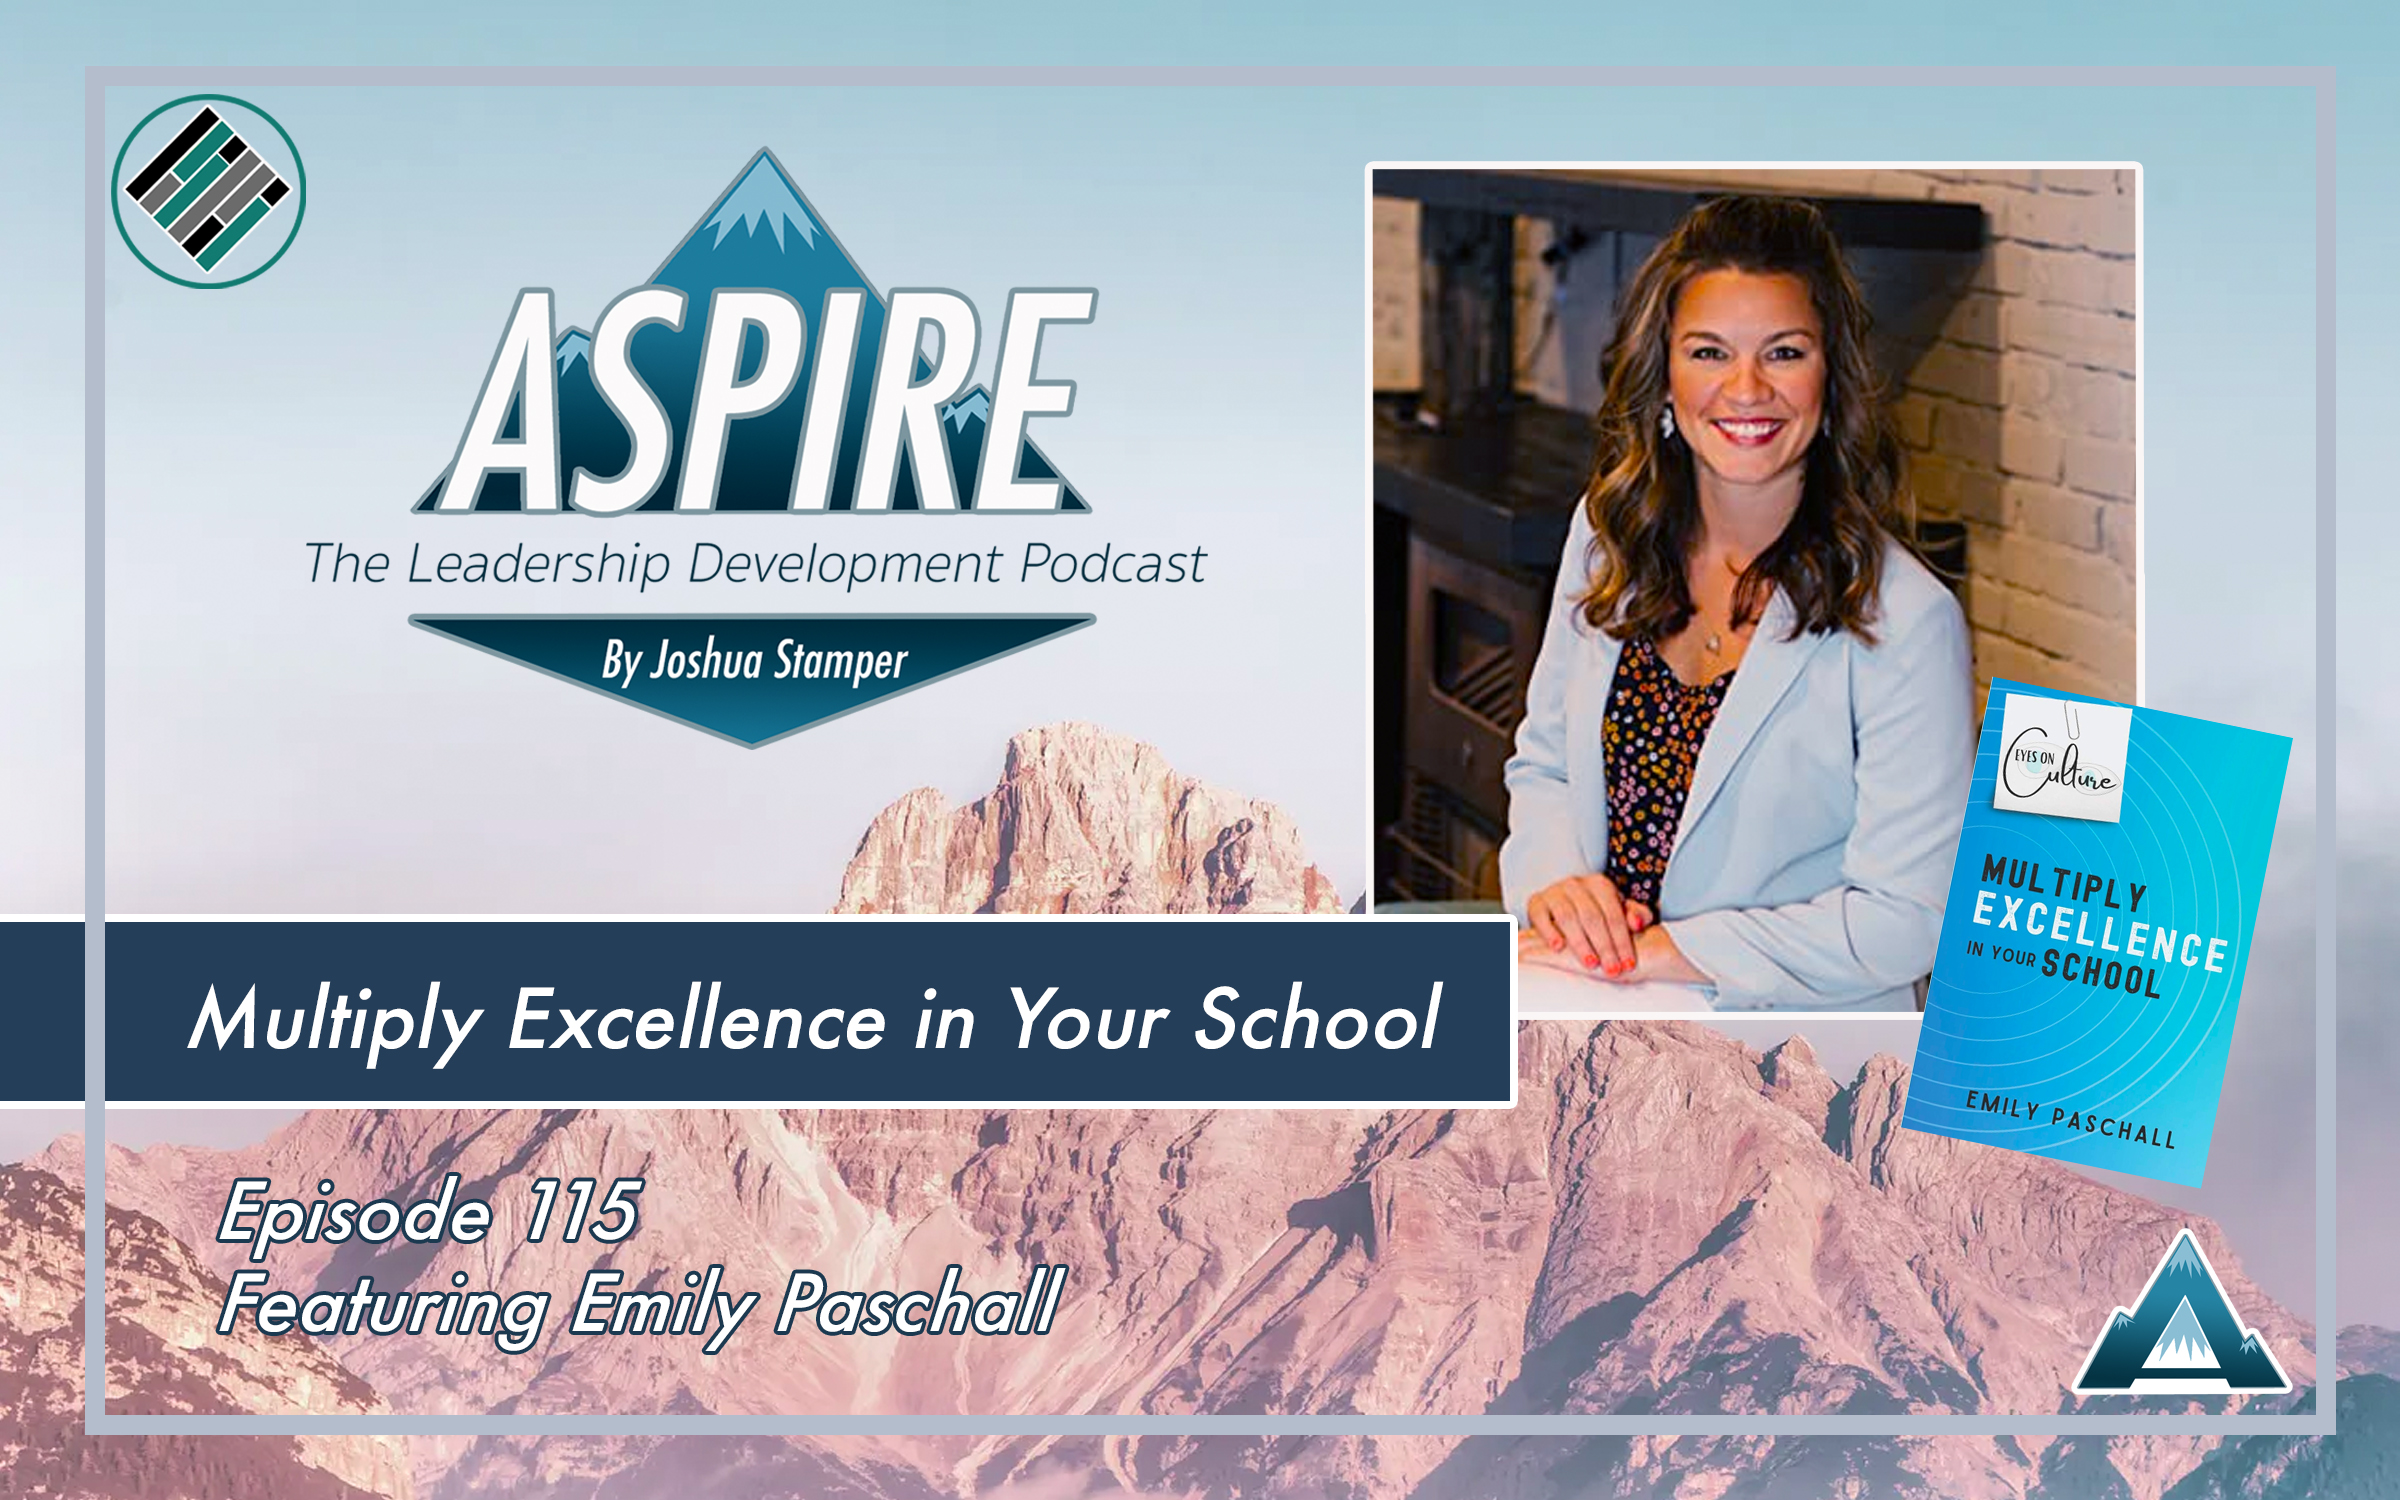 Aspire: The Leadership Development Podcast, Emily Paschall,